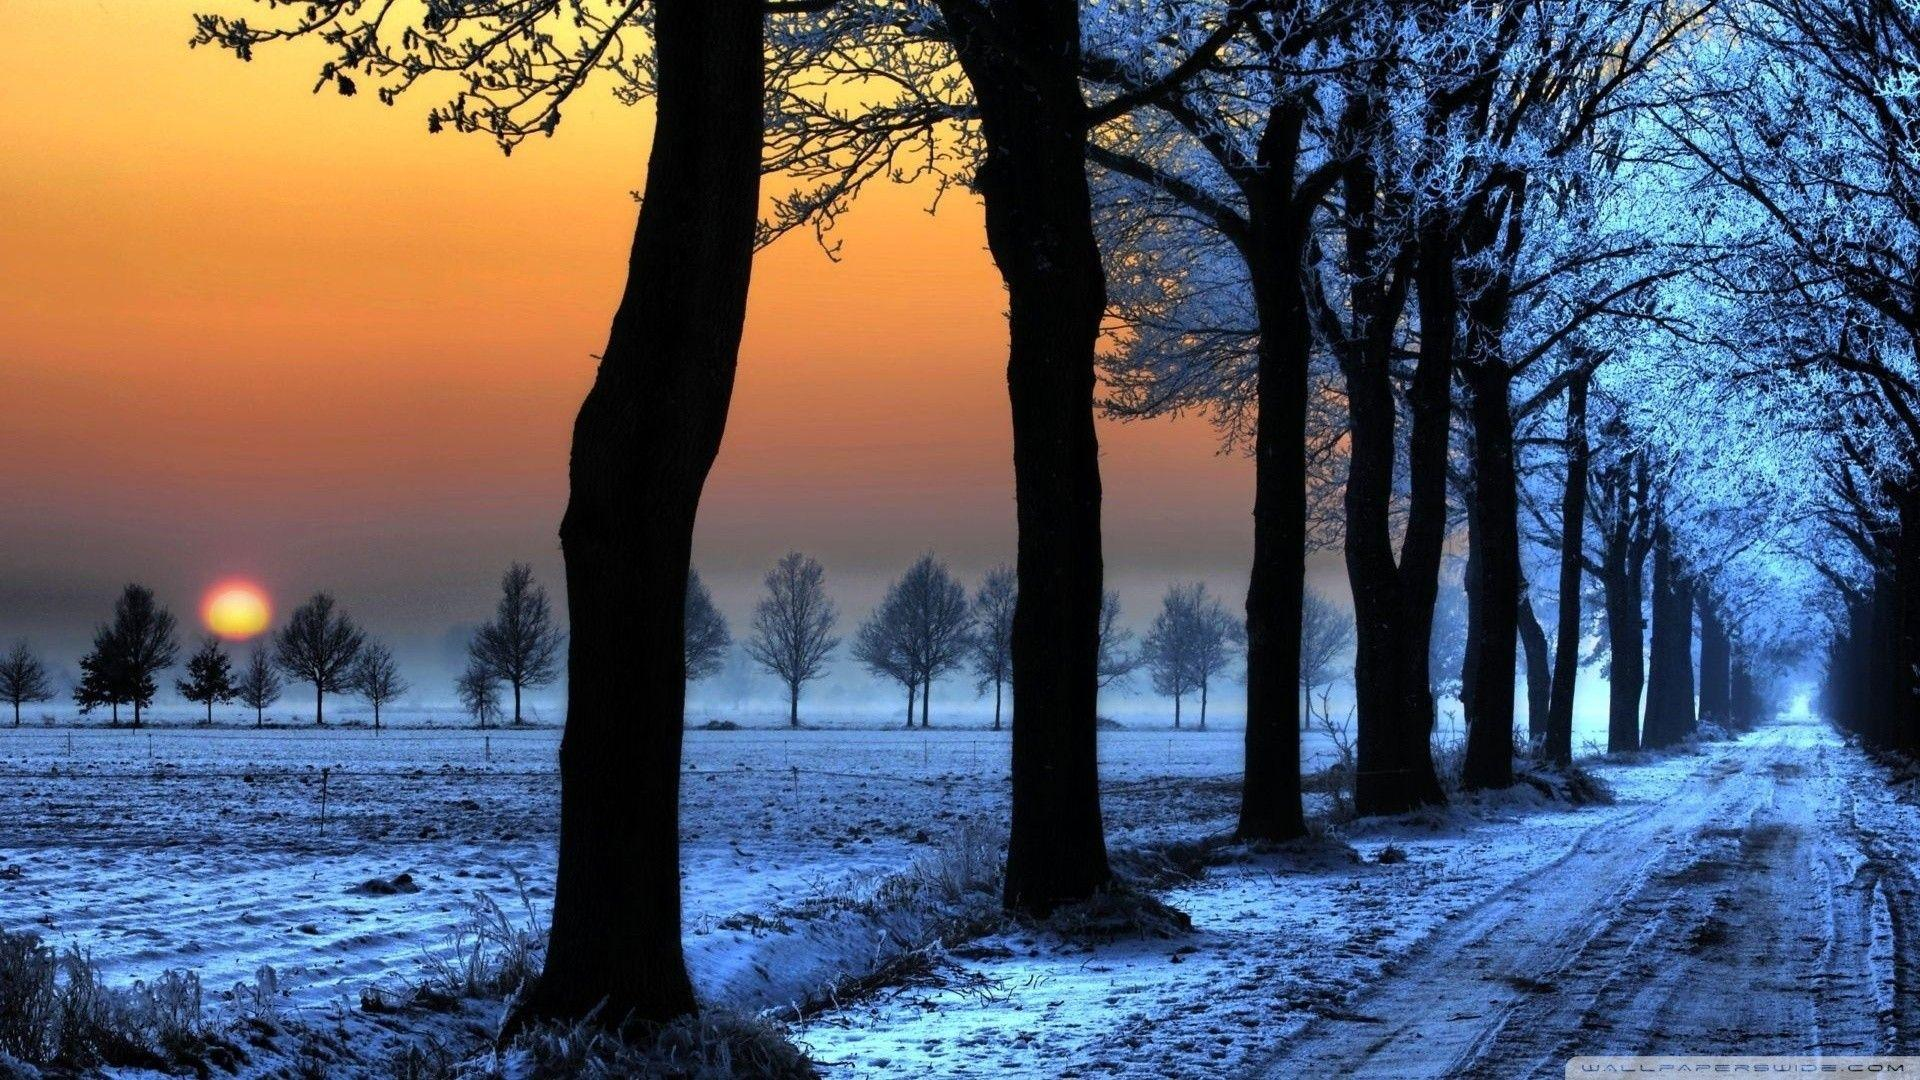 winter nature best wallpapers ever - photo #34